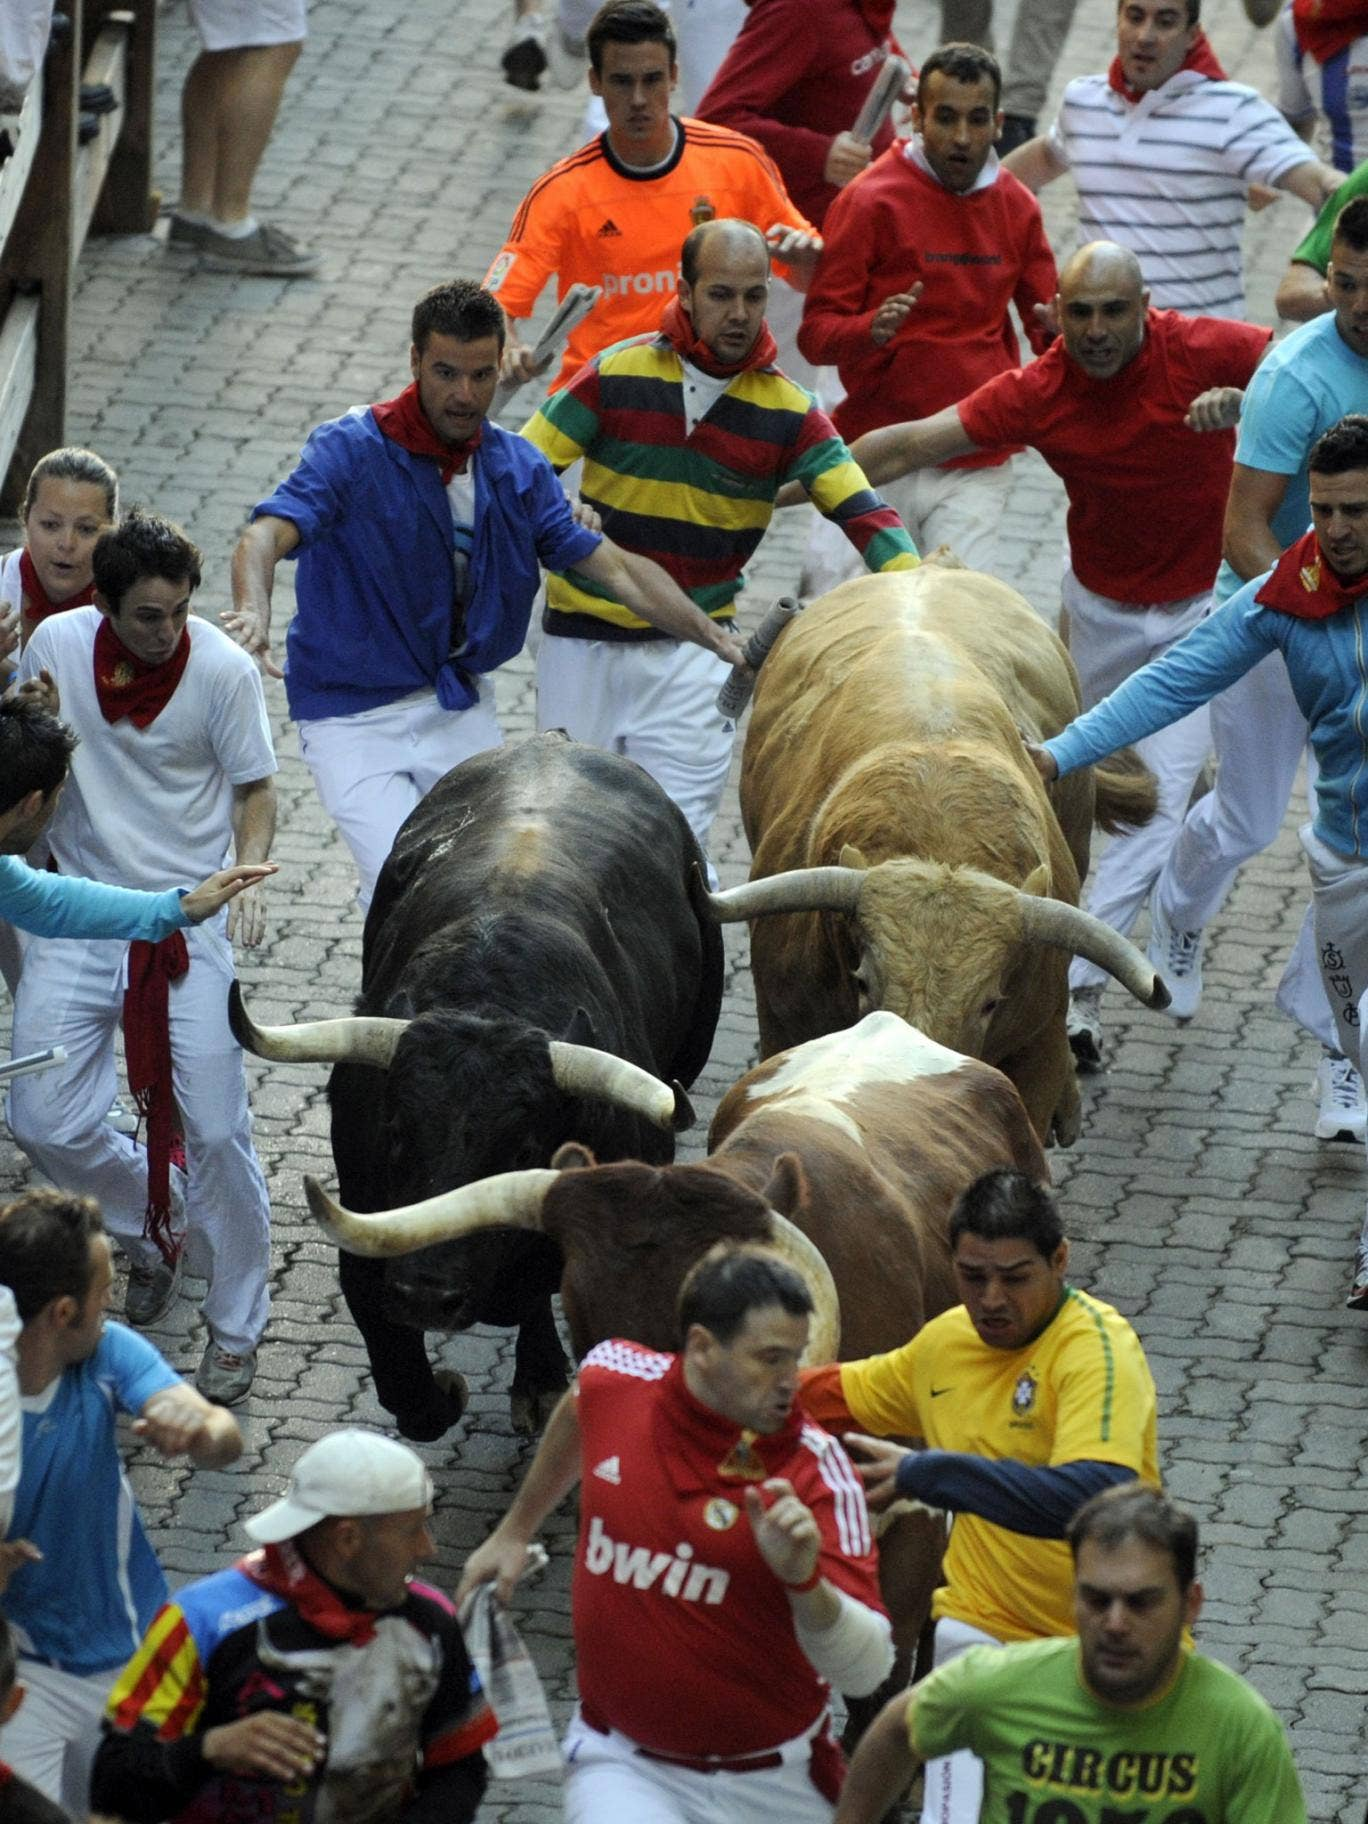 Participants run in front of bulls during the annual San Fermin festival, held every July in the northern Spanish city of Pamplona